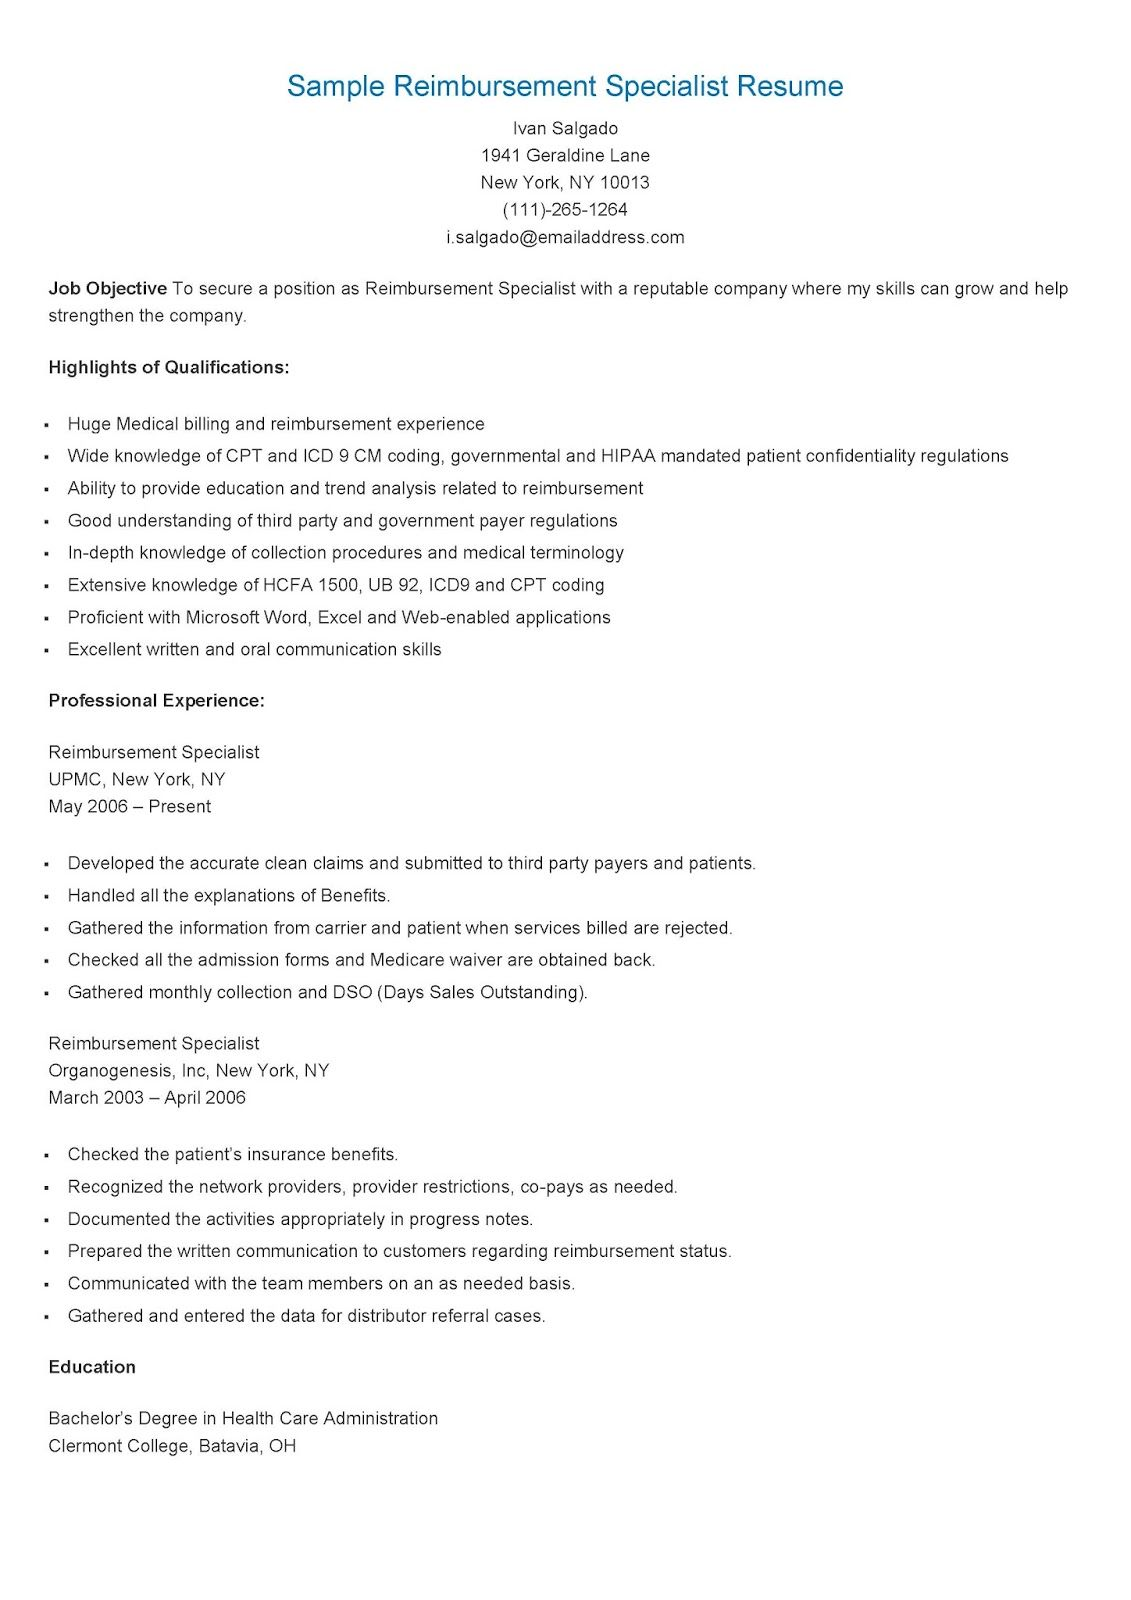 Sample Reimbursement Specialist Resume  Resame